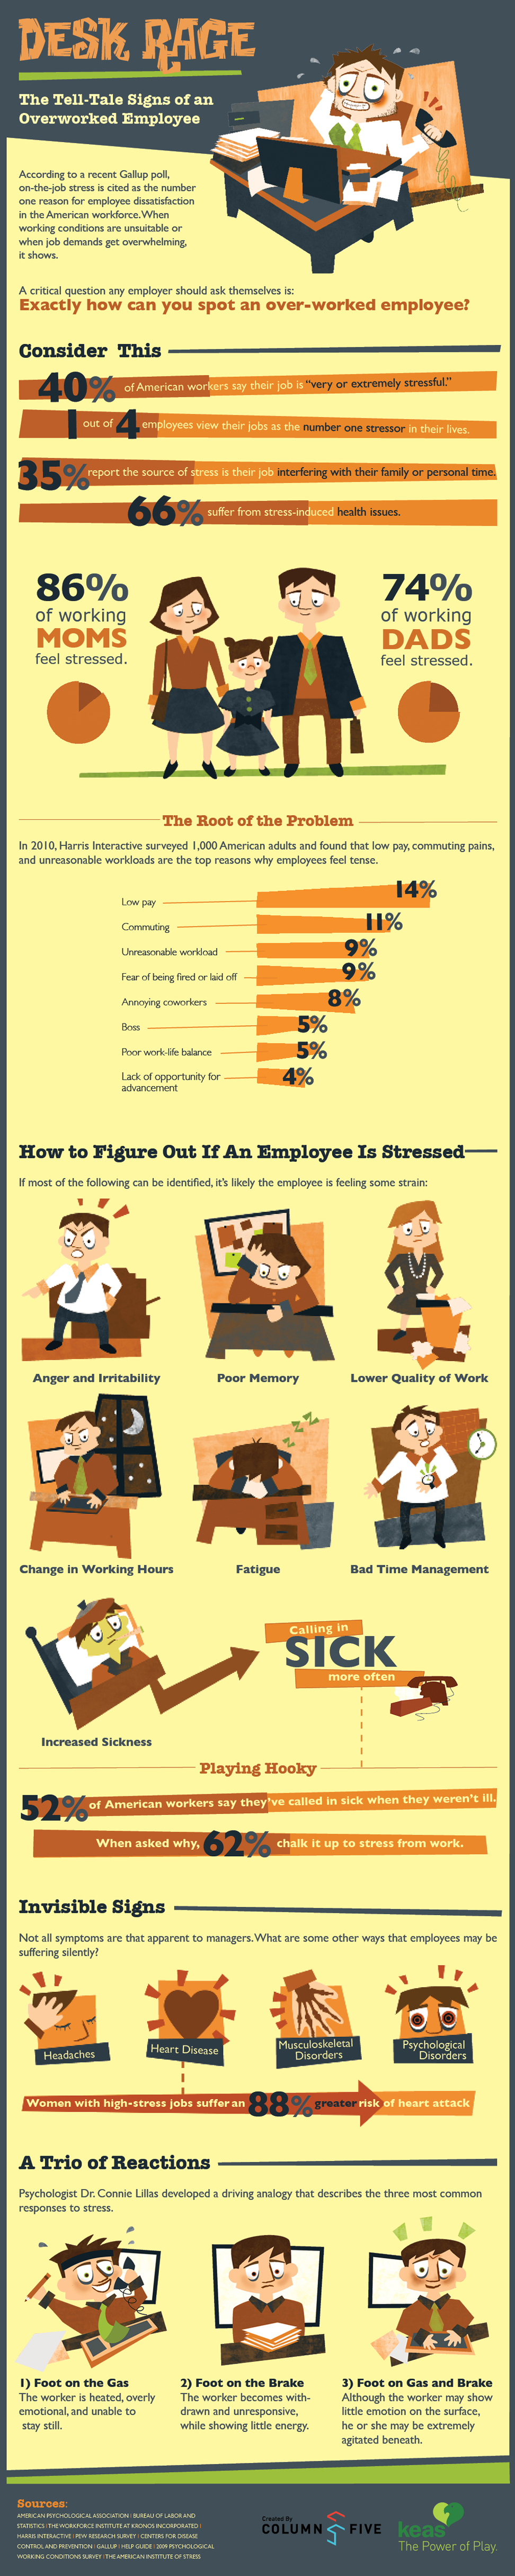 [Infographic]Tell-Tale signs your employee is overworked